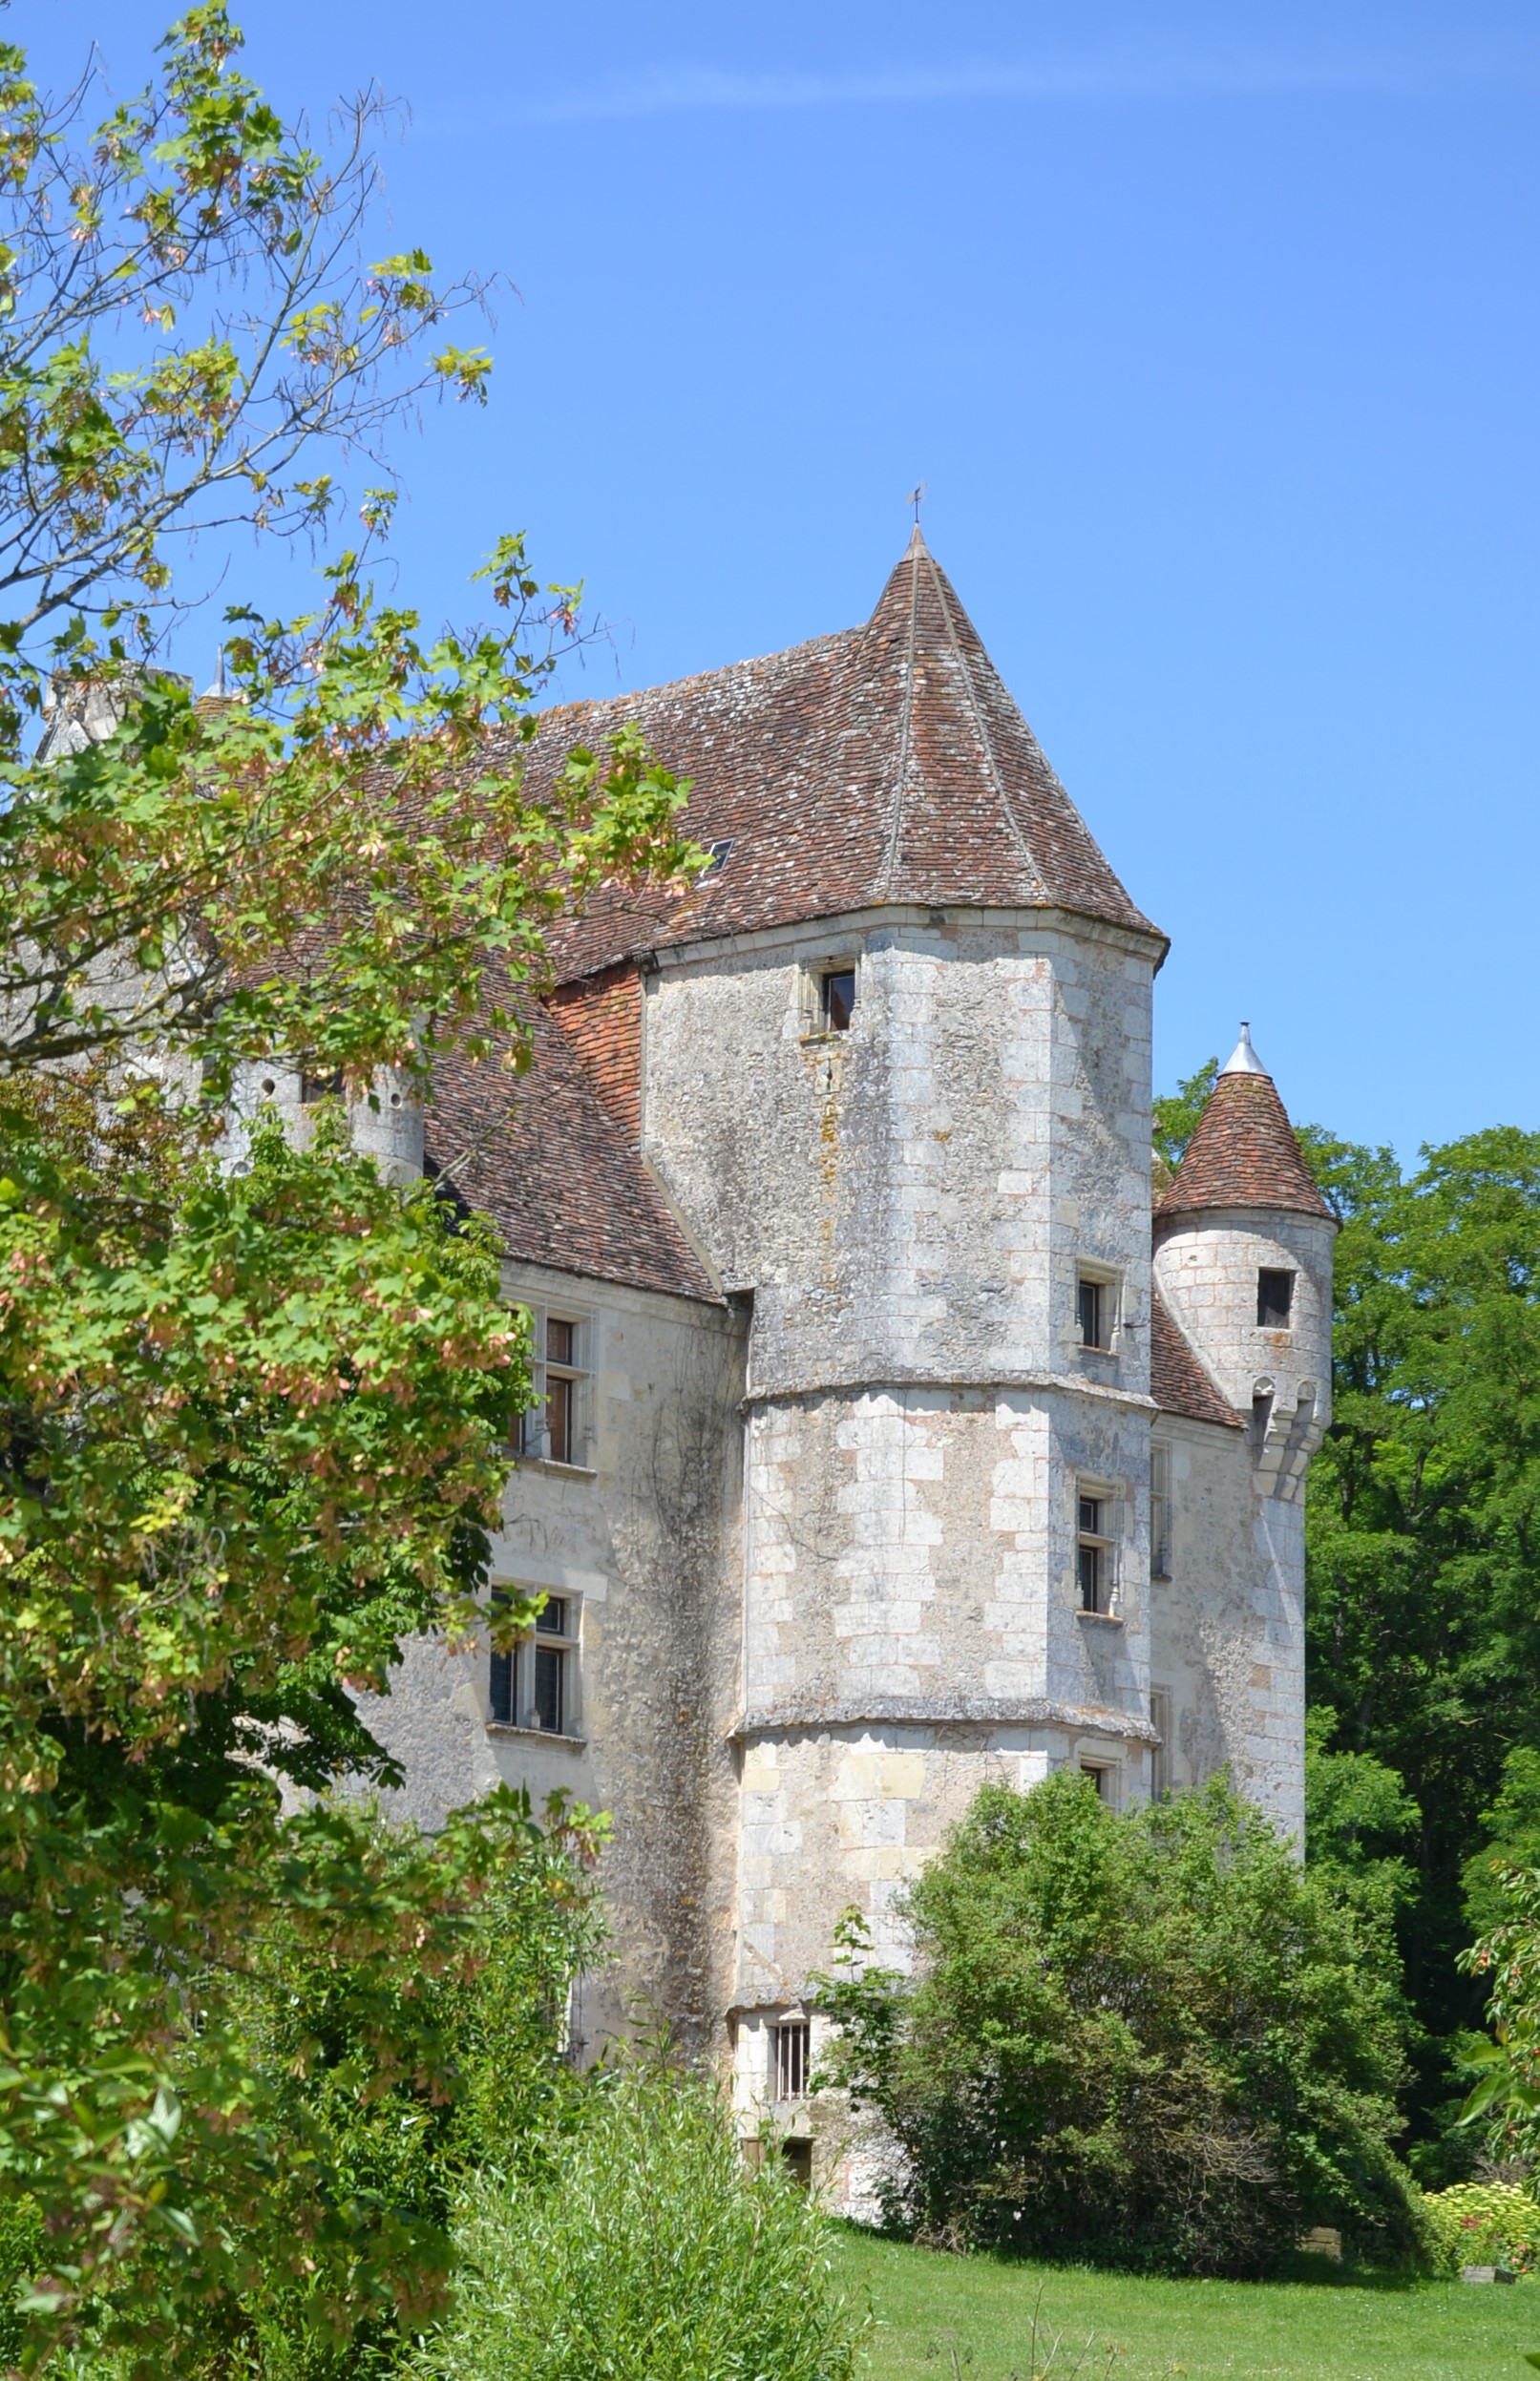 MANOIR DE COURBOYER - PERCHE EN NOCE